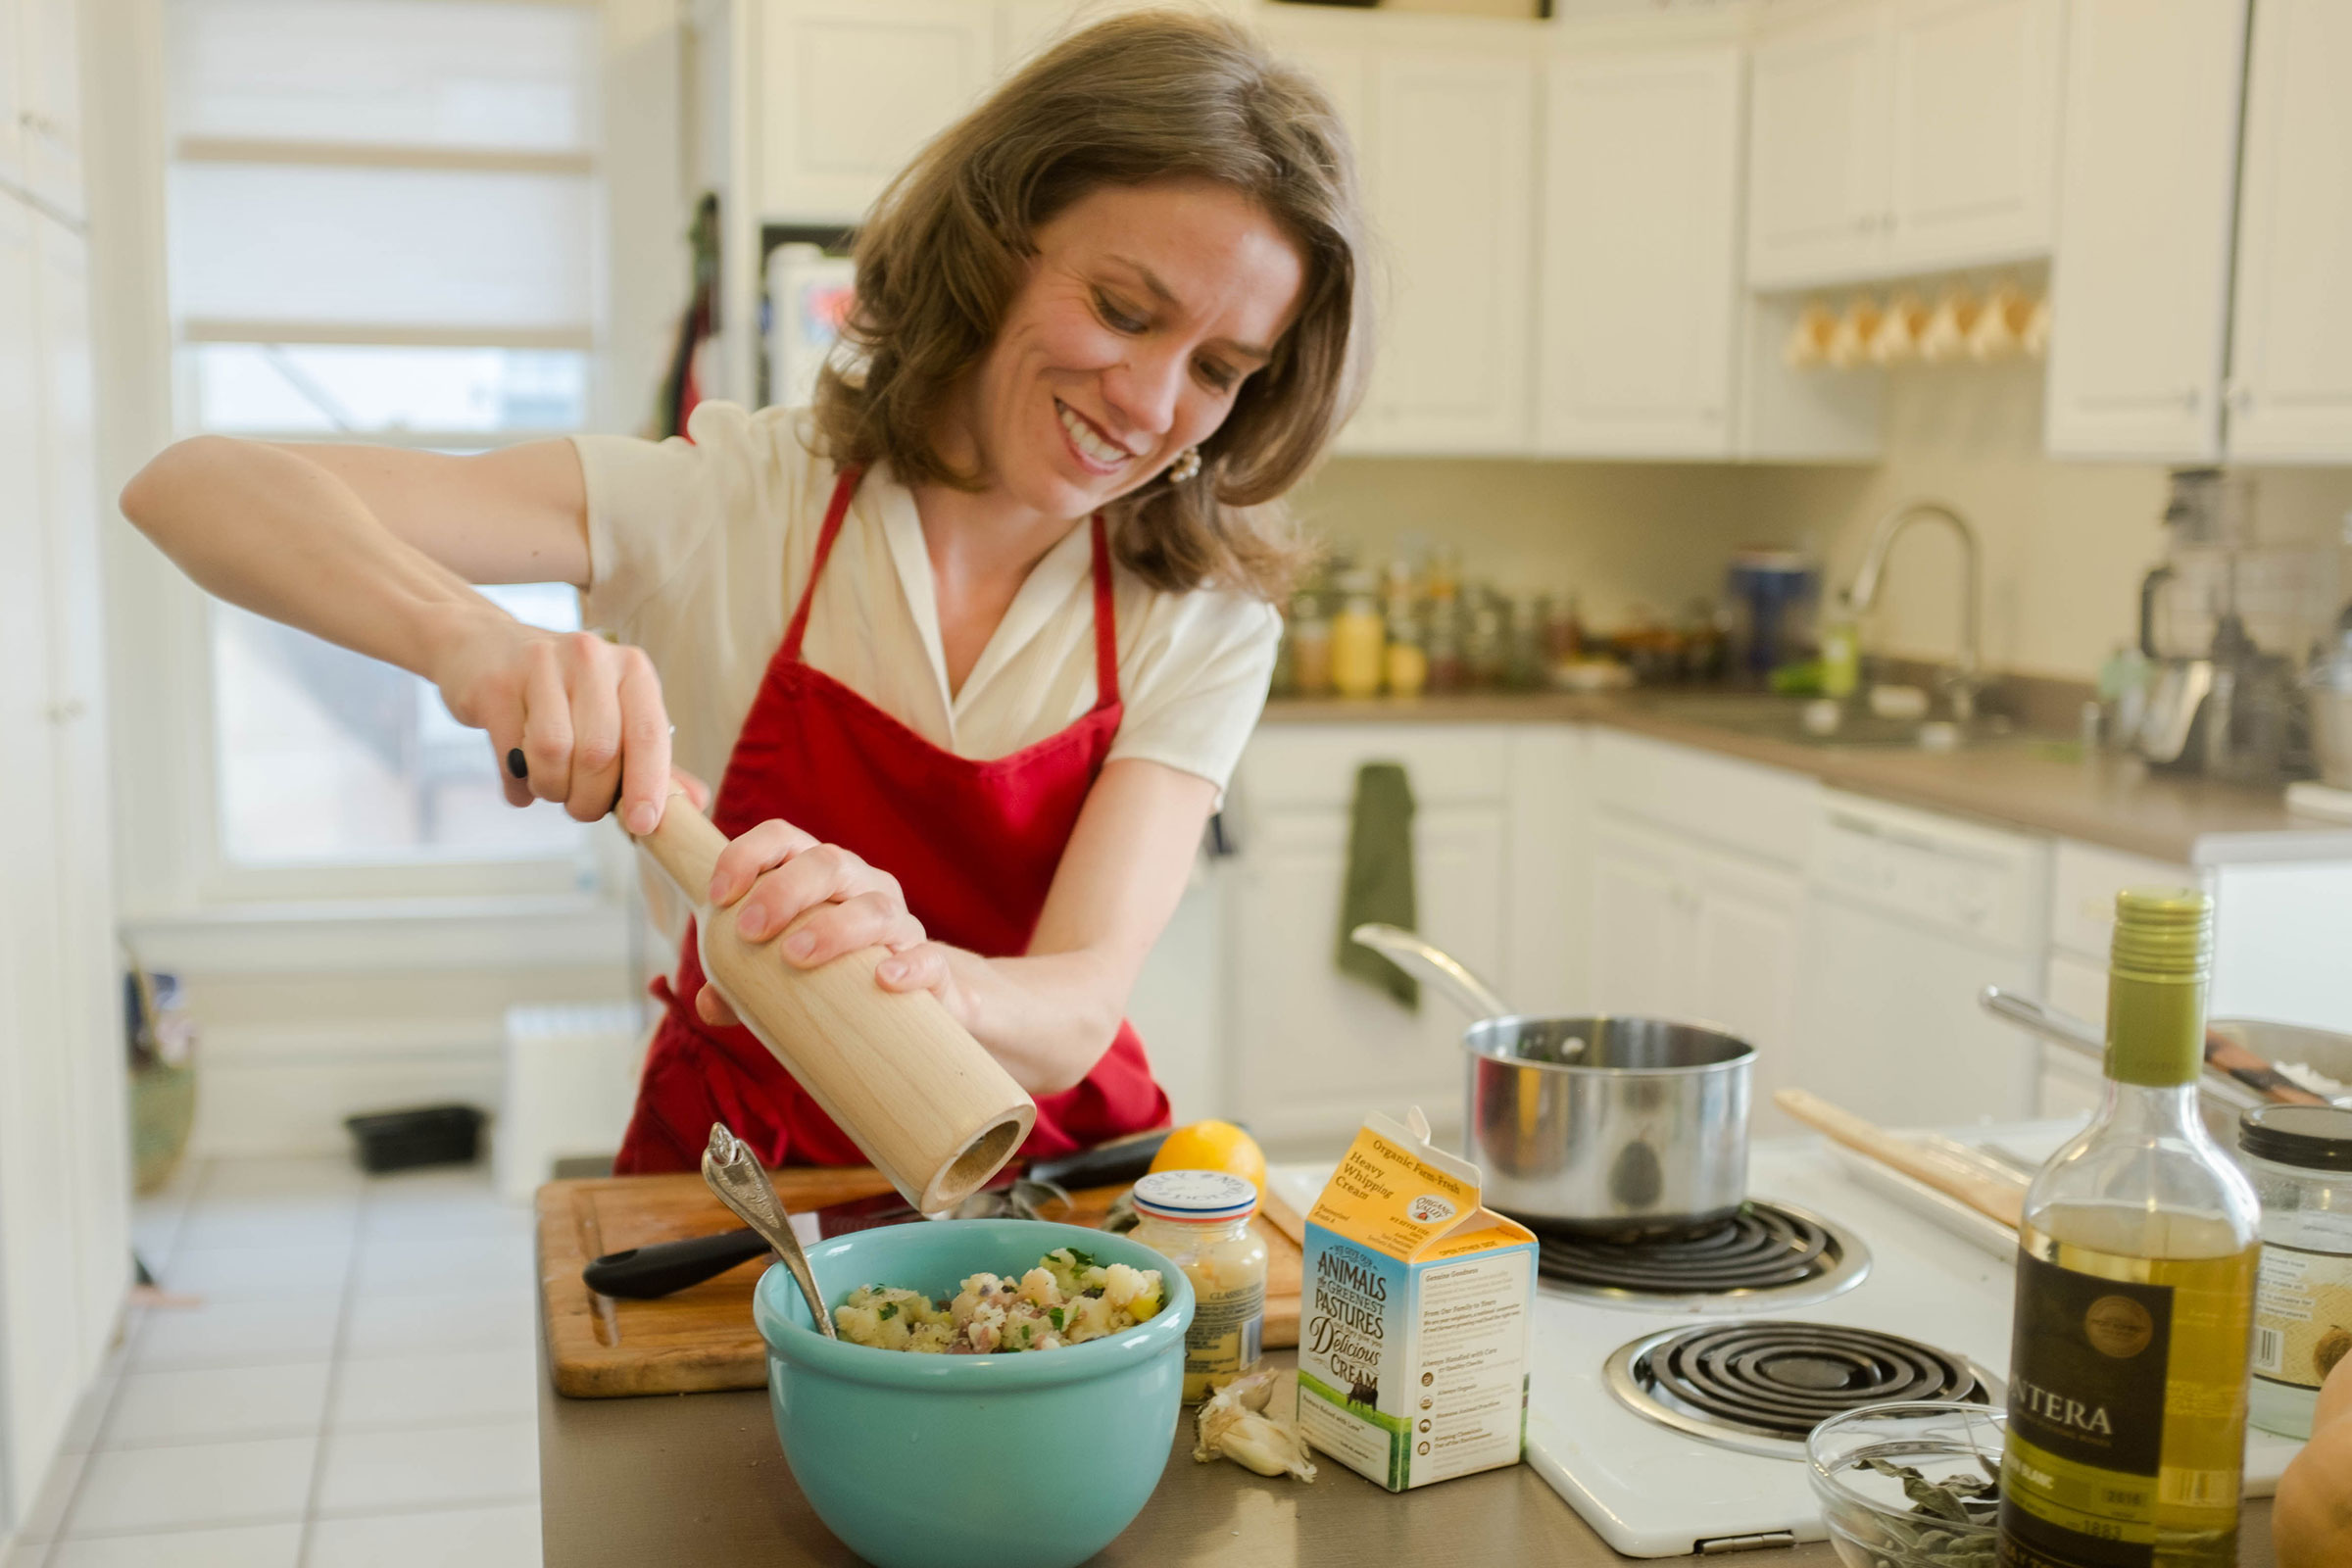 This Home-Grown Cooking Show is a Perfect Watch in a Time of Social Distancing